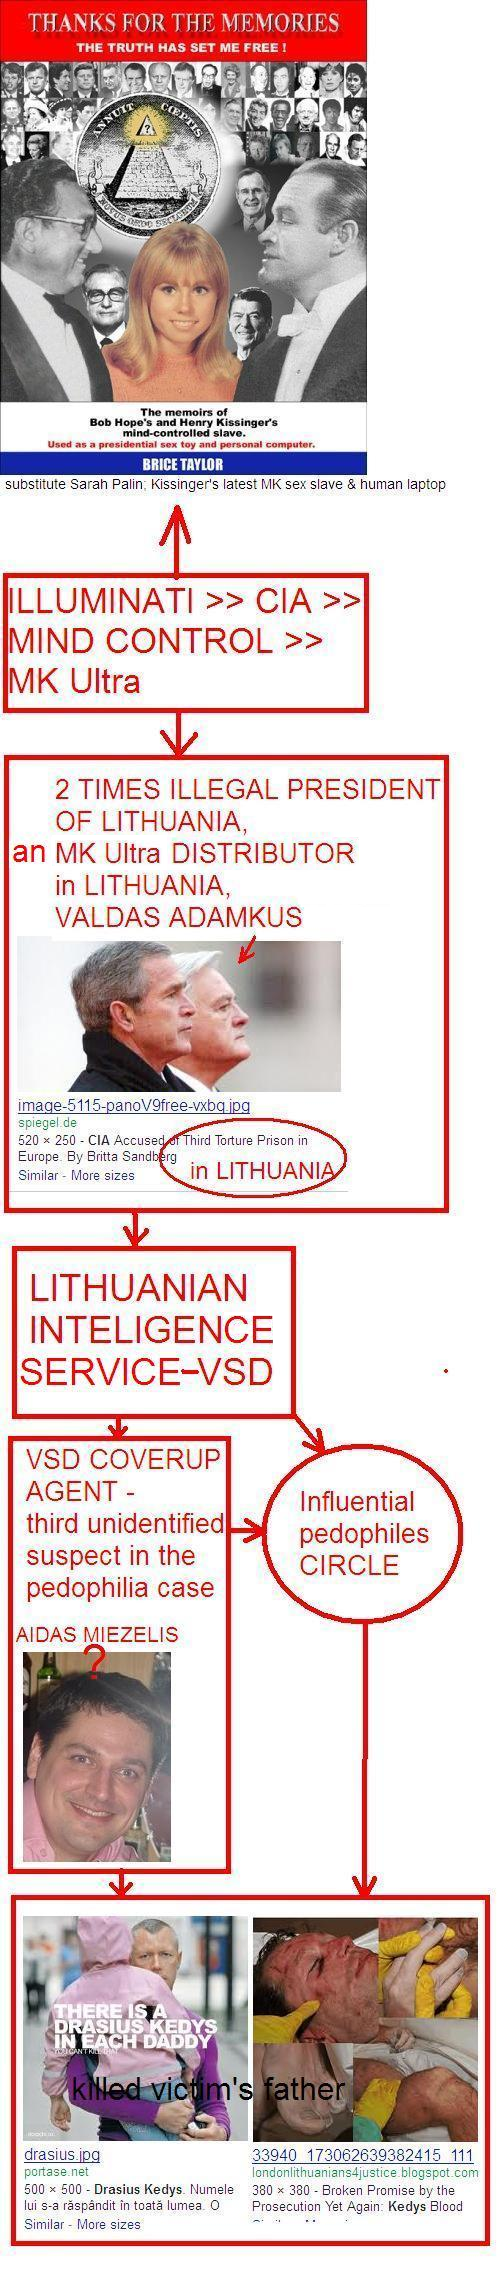 High Level Government Pedophile Ring in Lithuania...